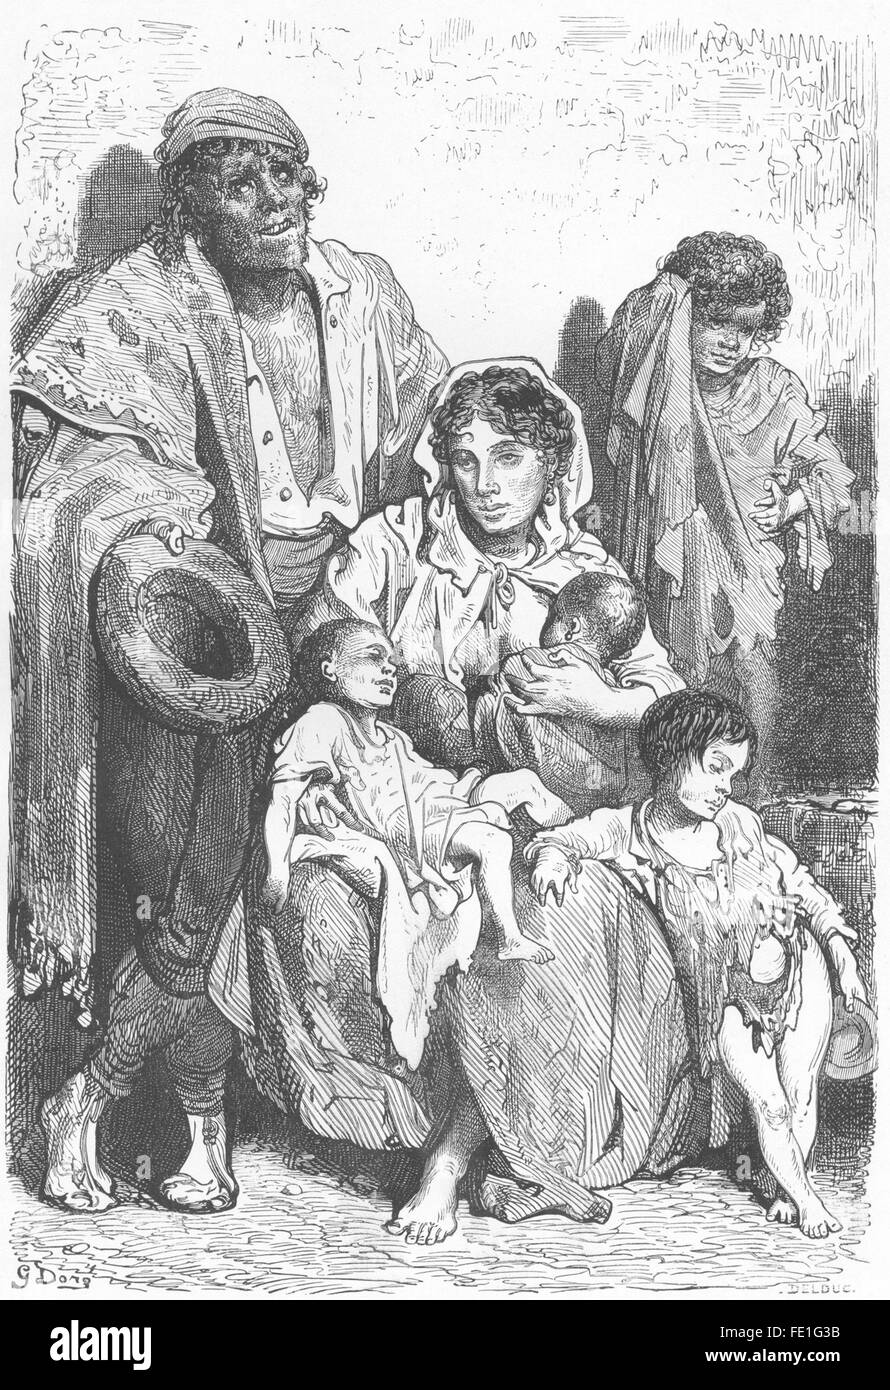 SPAIN: A family of Mendicants, antique print 1881 - Stock Image